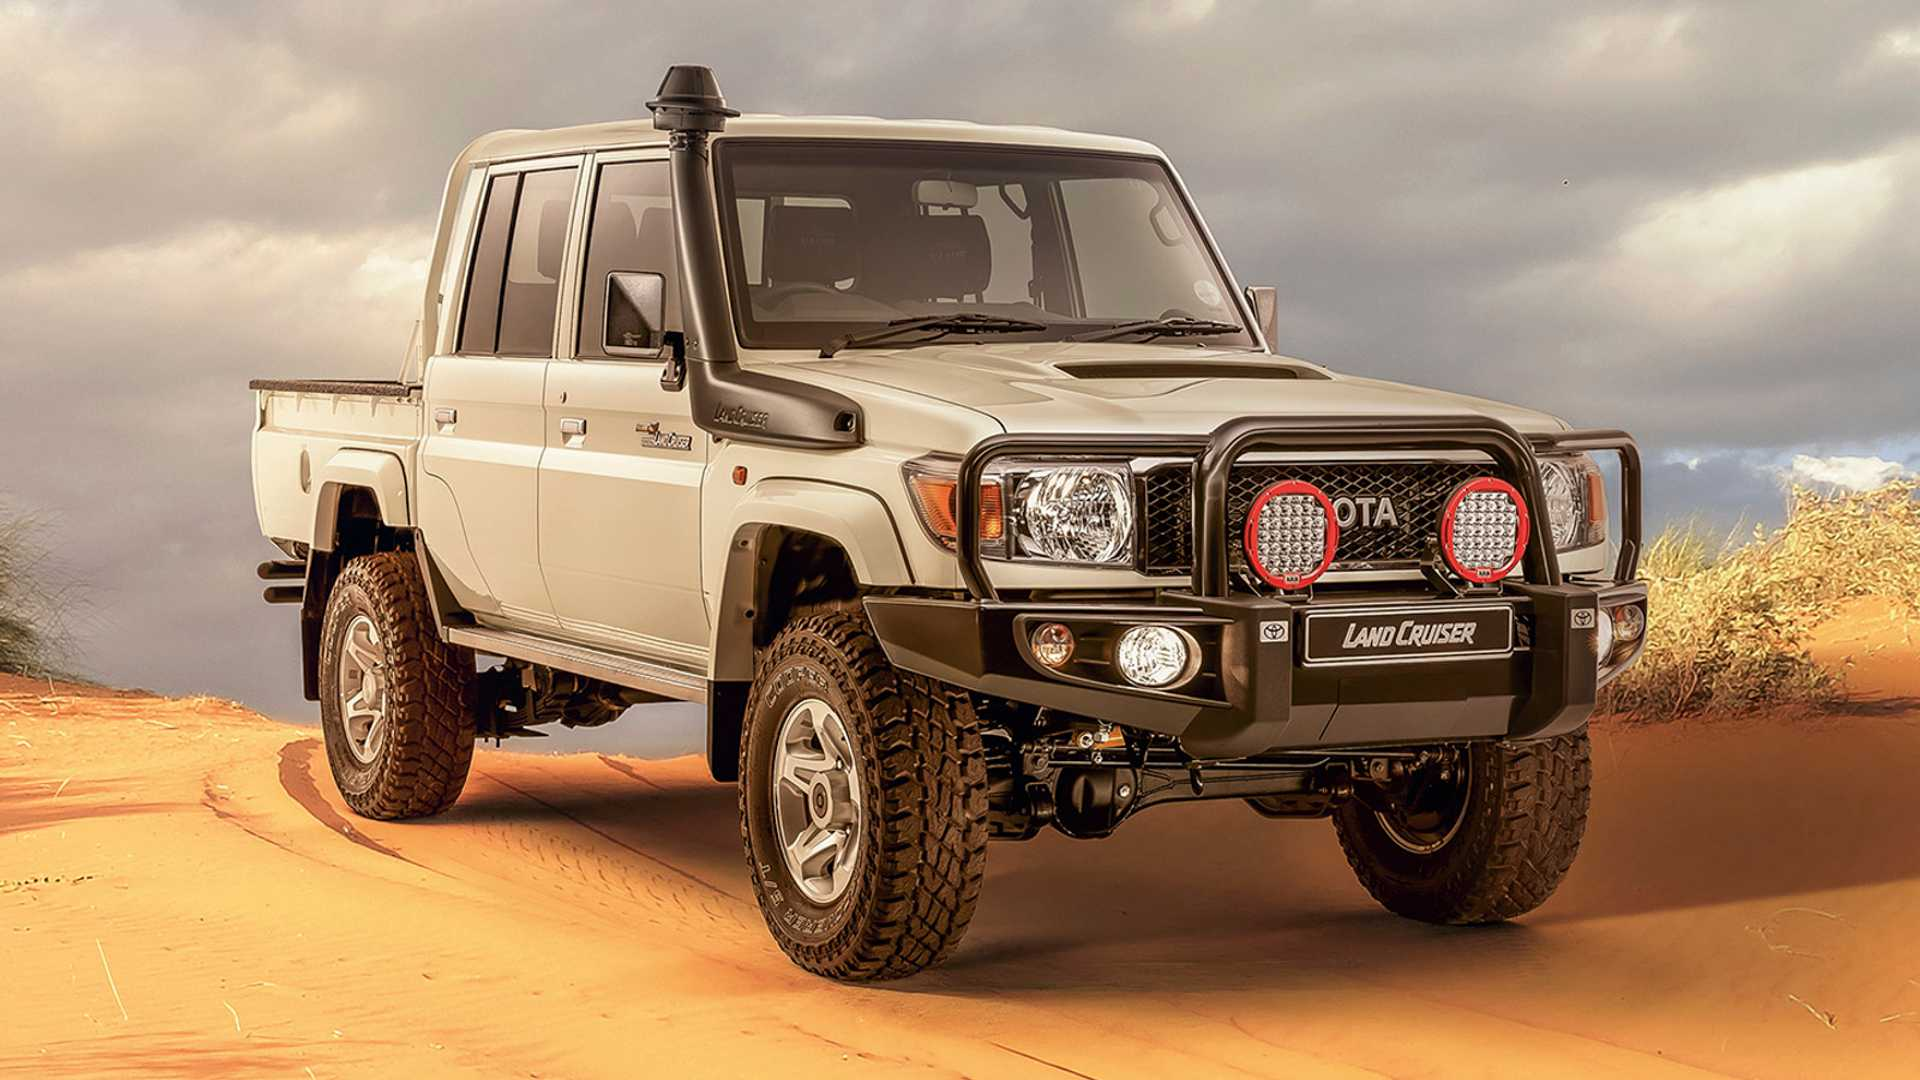 Toyota Land Cruiser Namib Might Be Coolest Car On Sale... In S. Africa